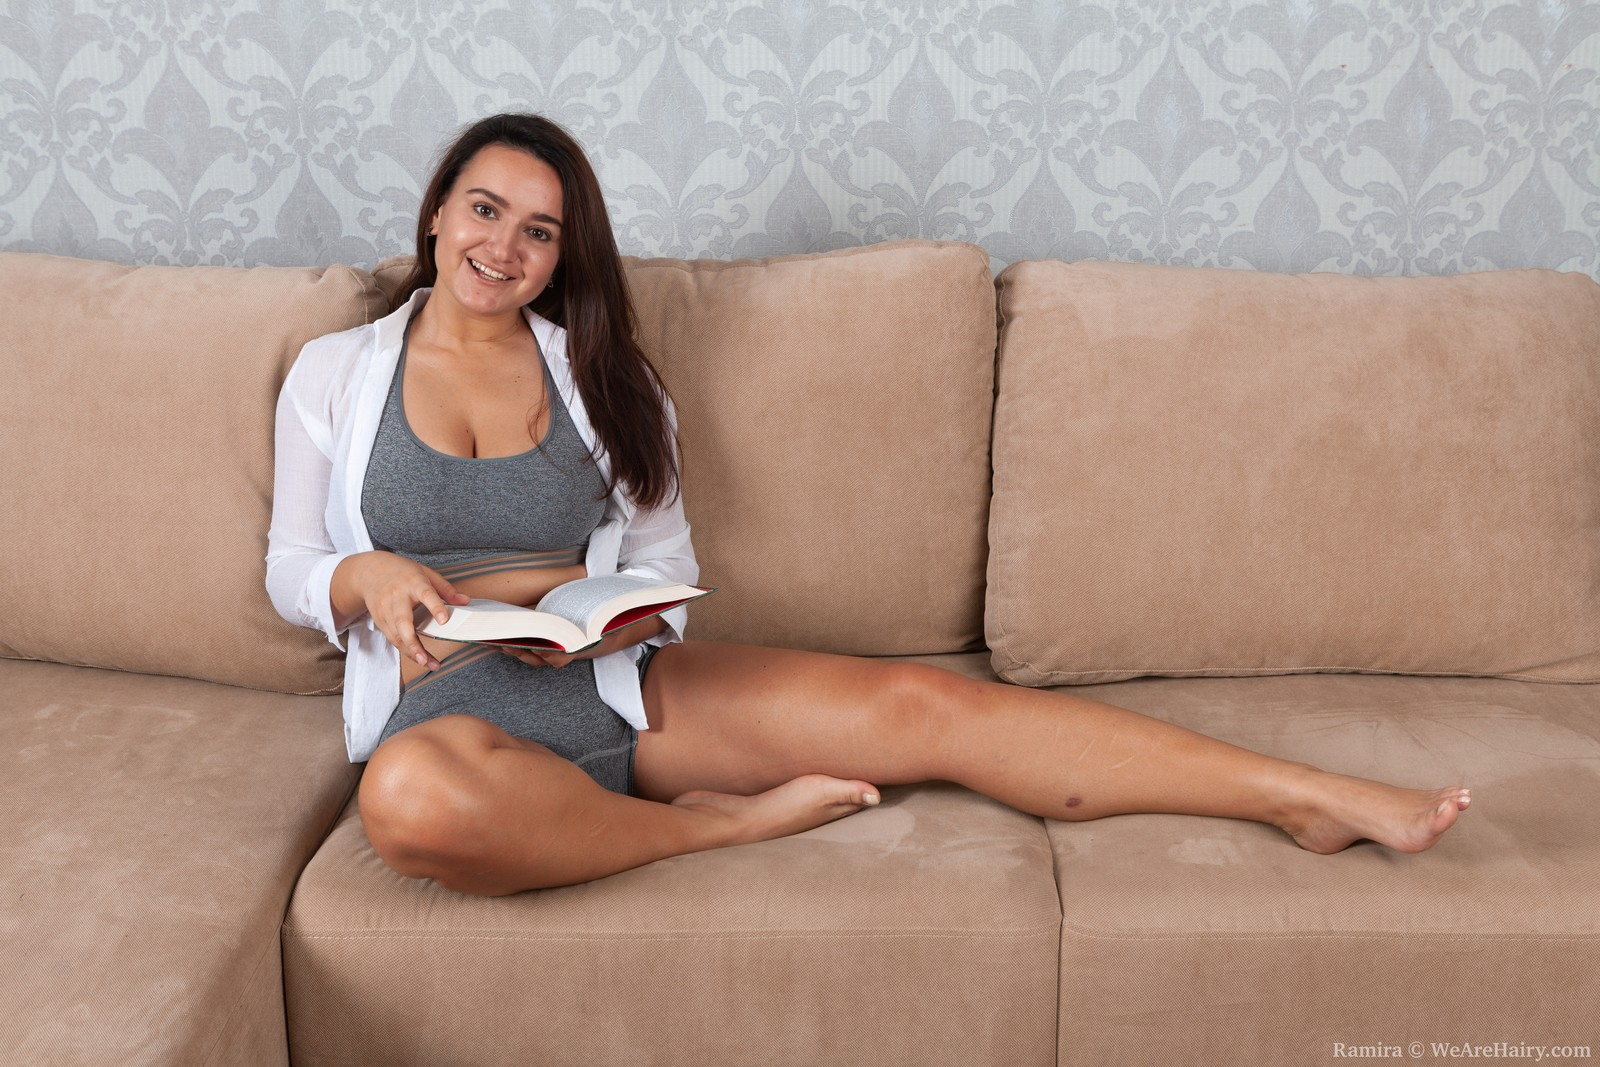 Ramira strips naked on her couch after reading